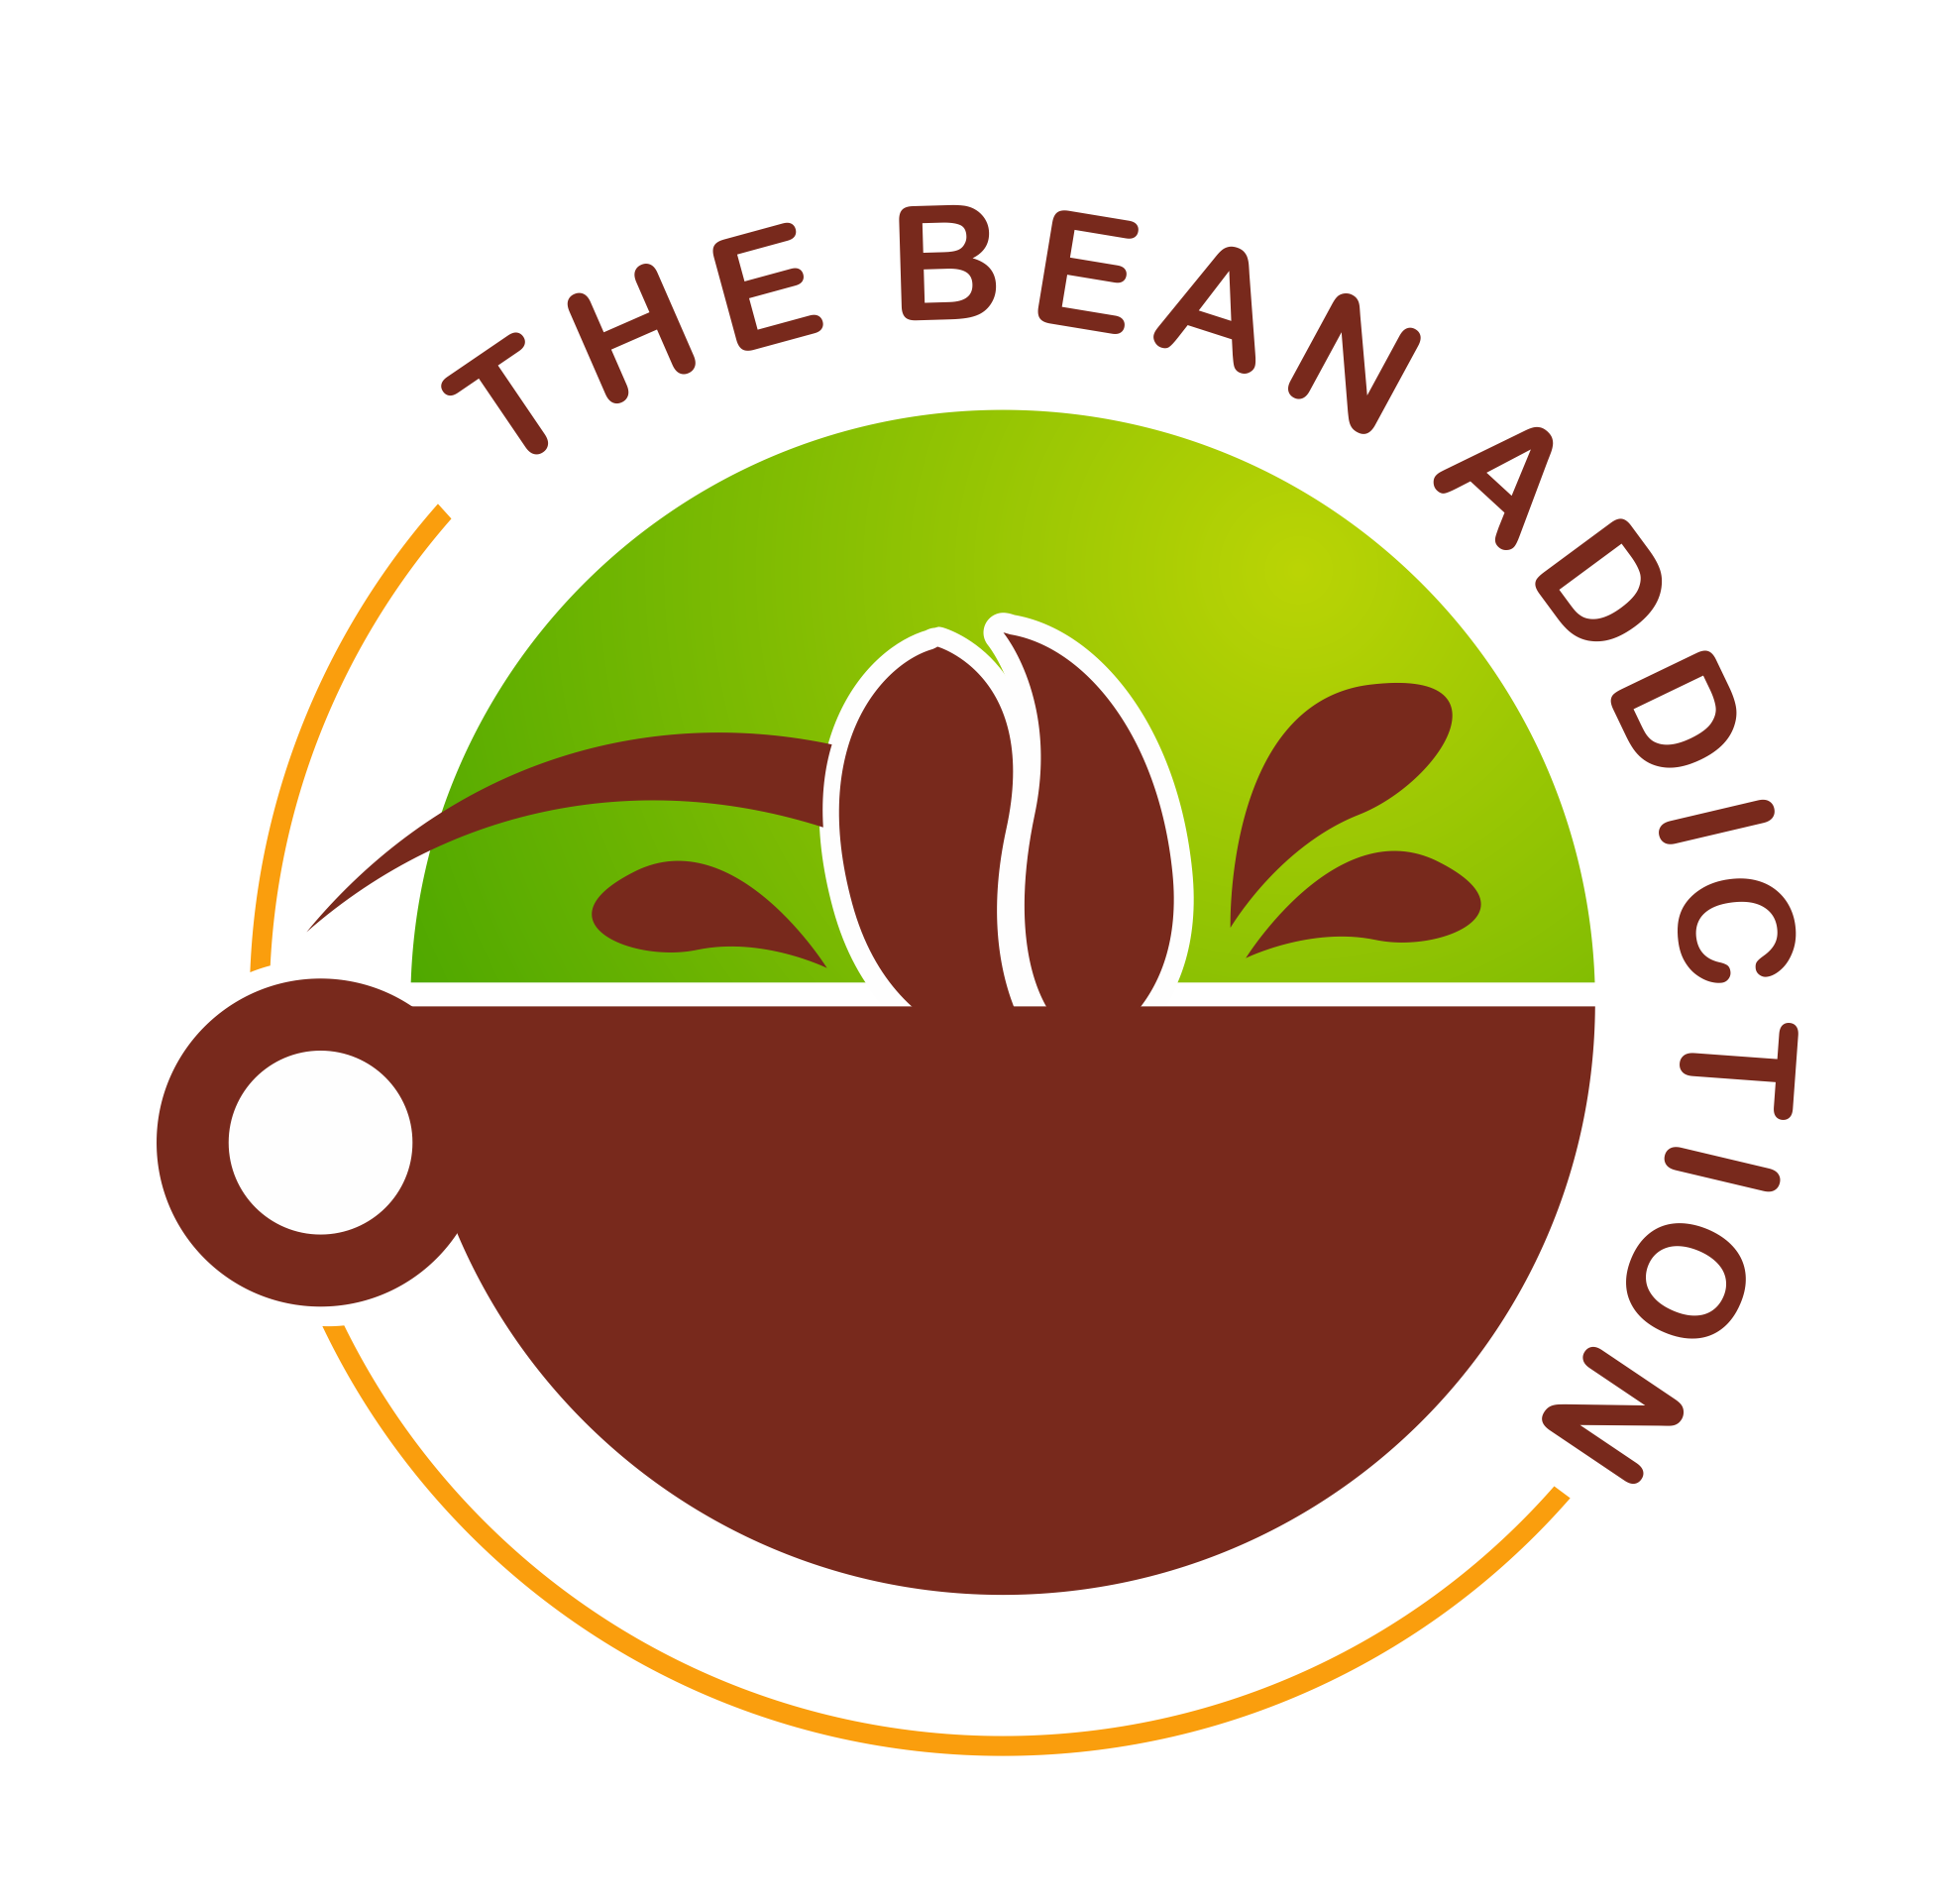 The Bean Addiction